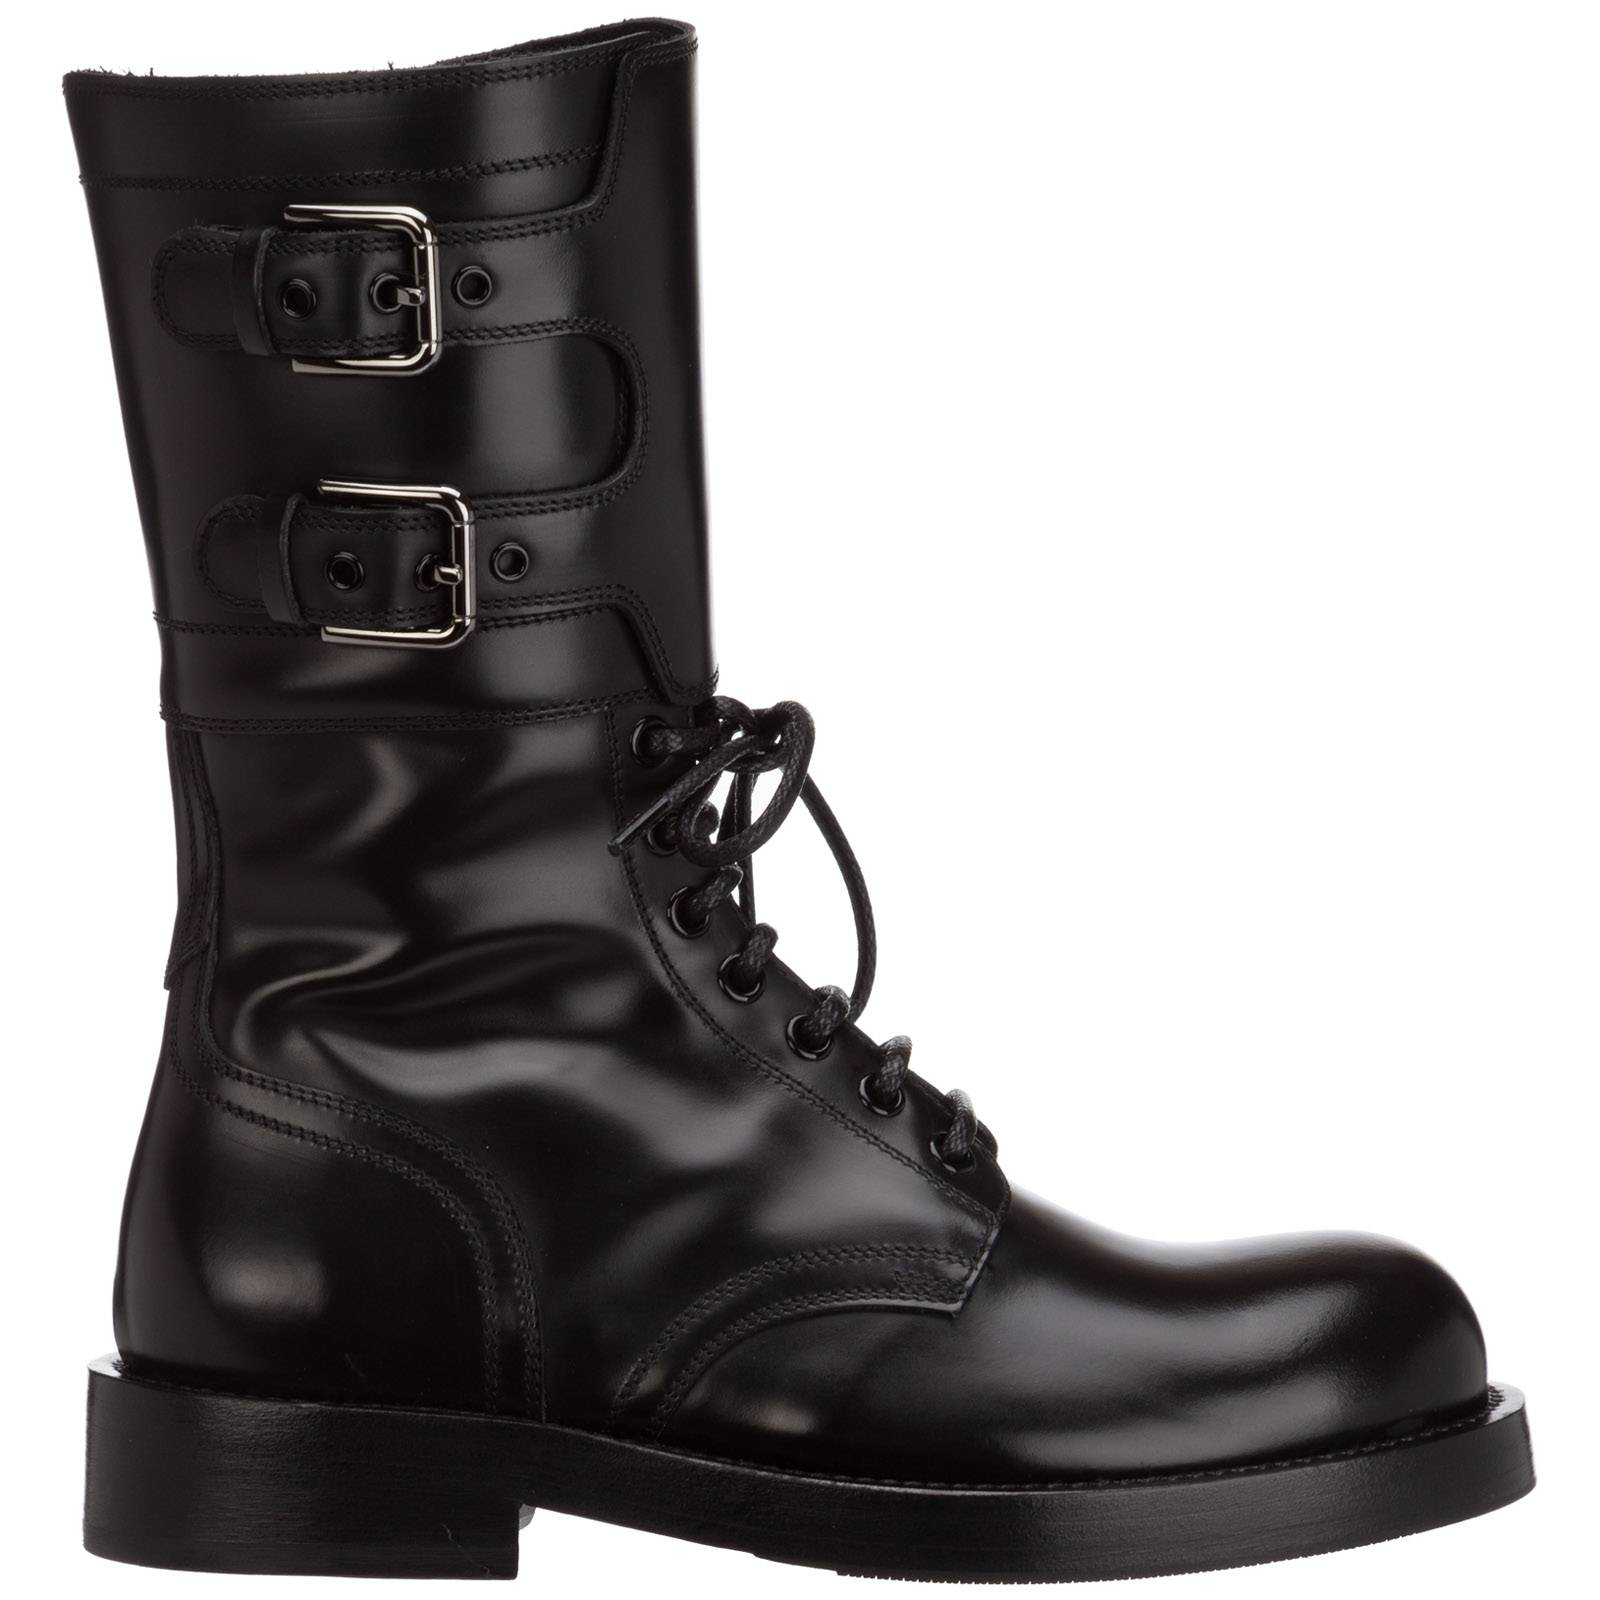 Dolce&Gabbana Women's leather ankle boots booties  - Women - Black - Size: 37